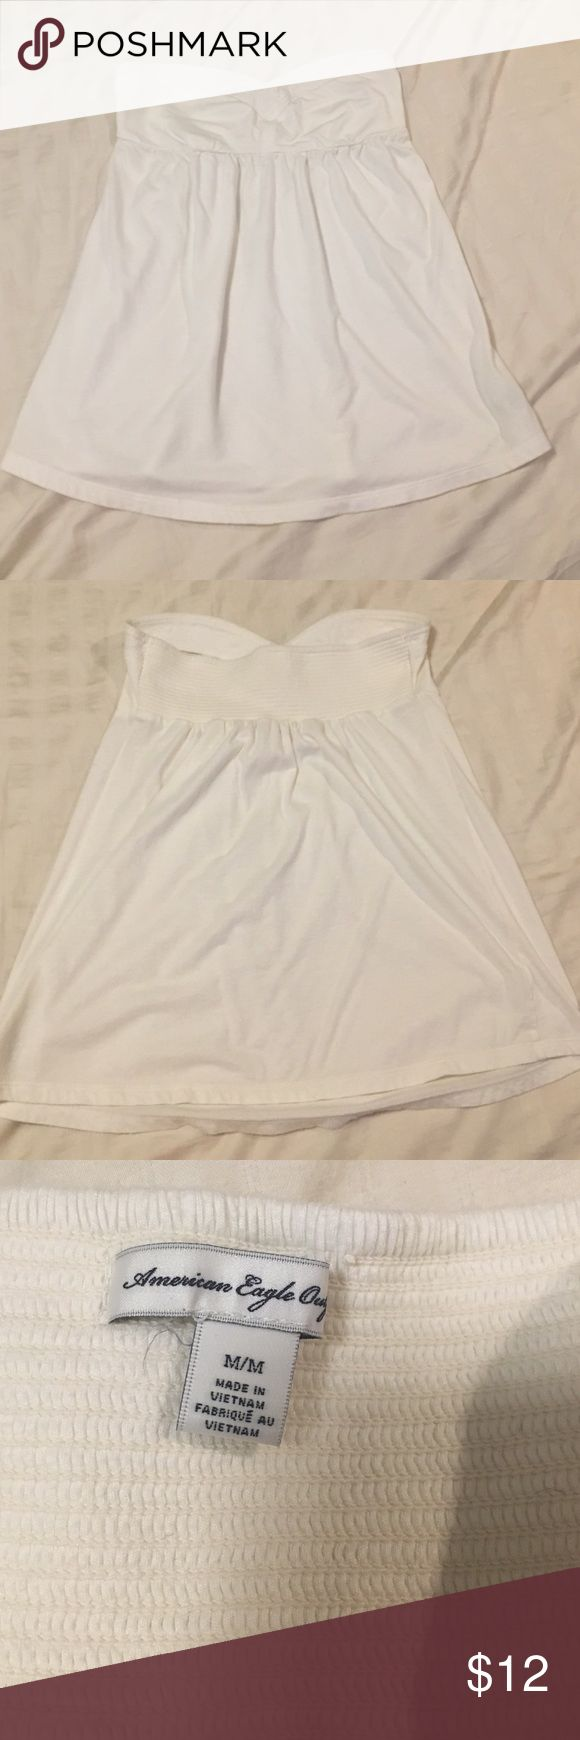 Strapless top American Eagle strapless top. White Tops